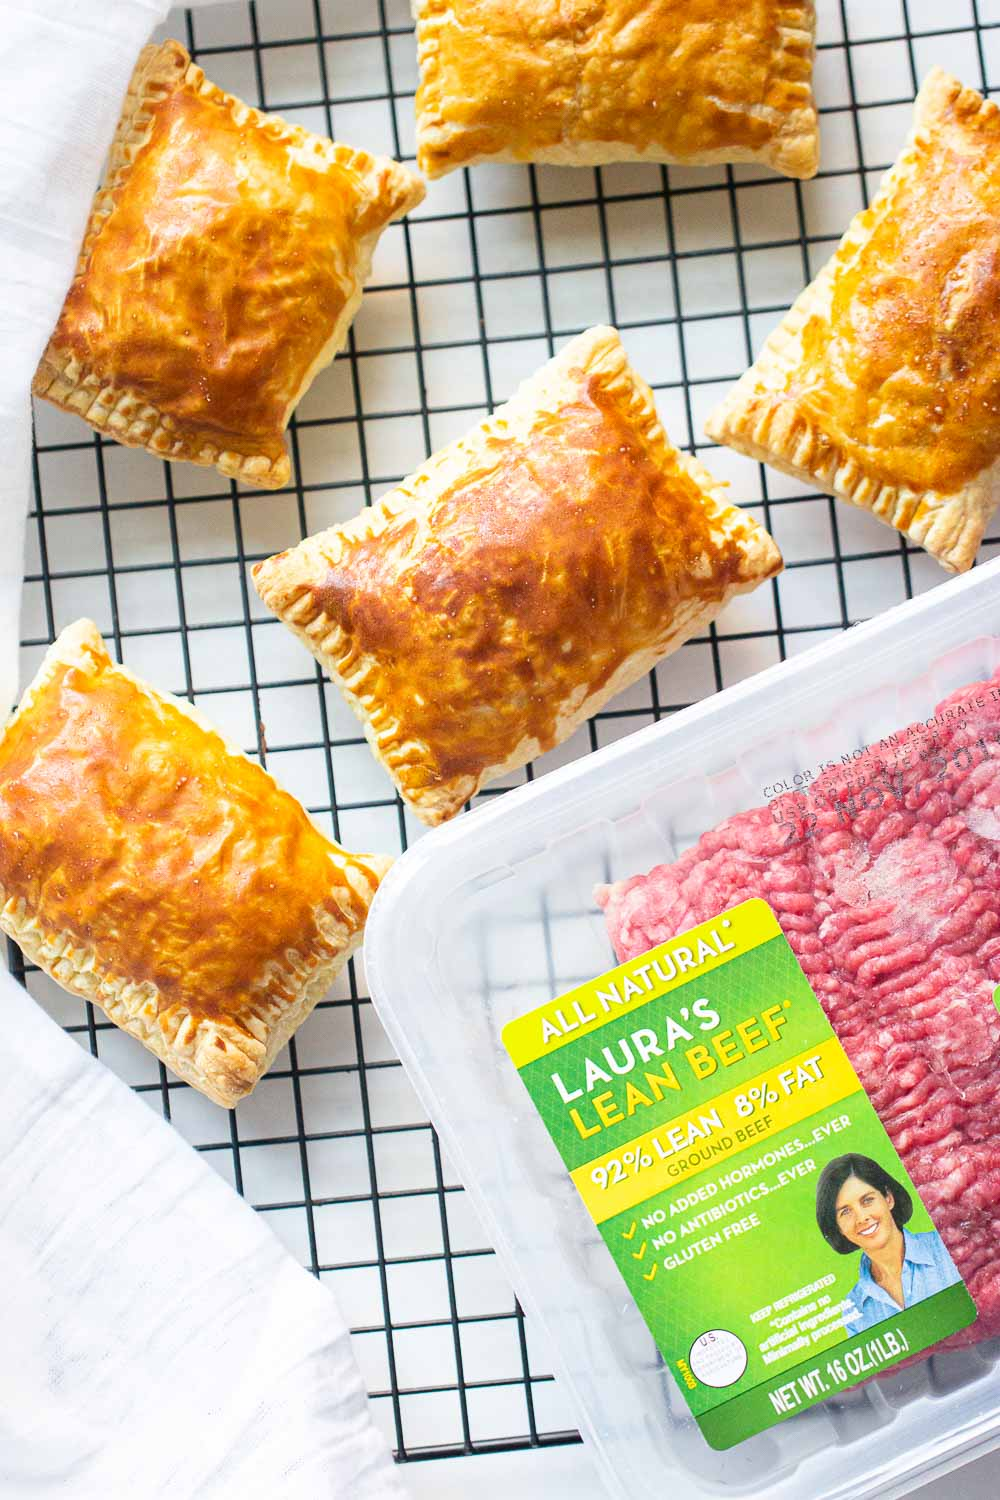 Each of these delicious baked Beef Curry Puff is filled with Laura's Lean Beef and wrapped in golden flaky pastry.